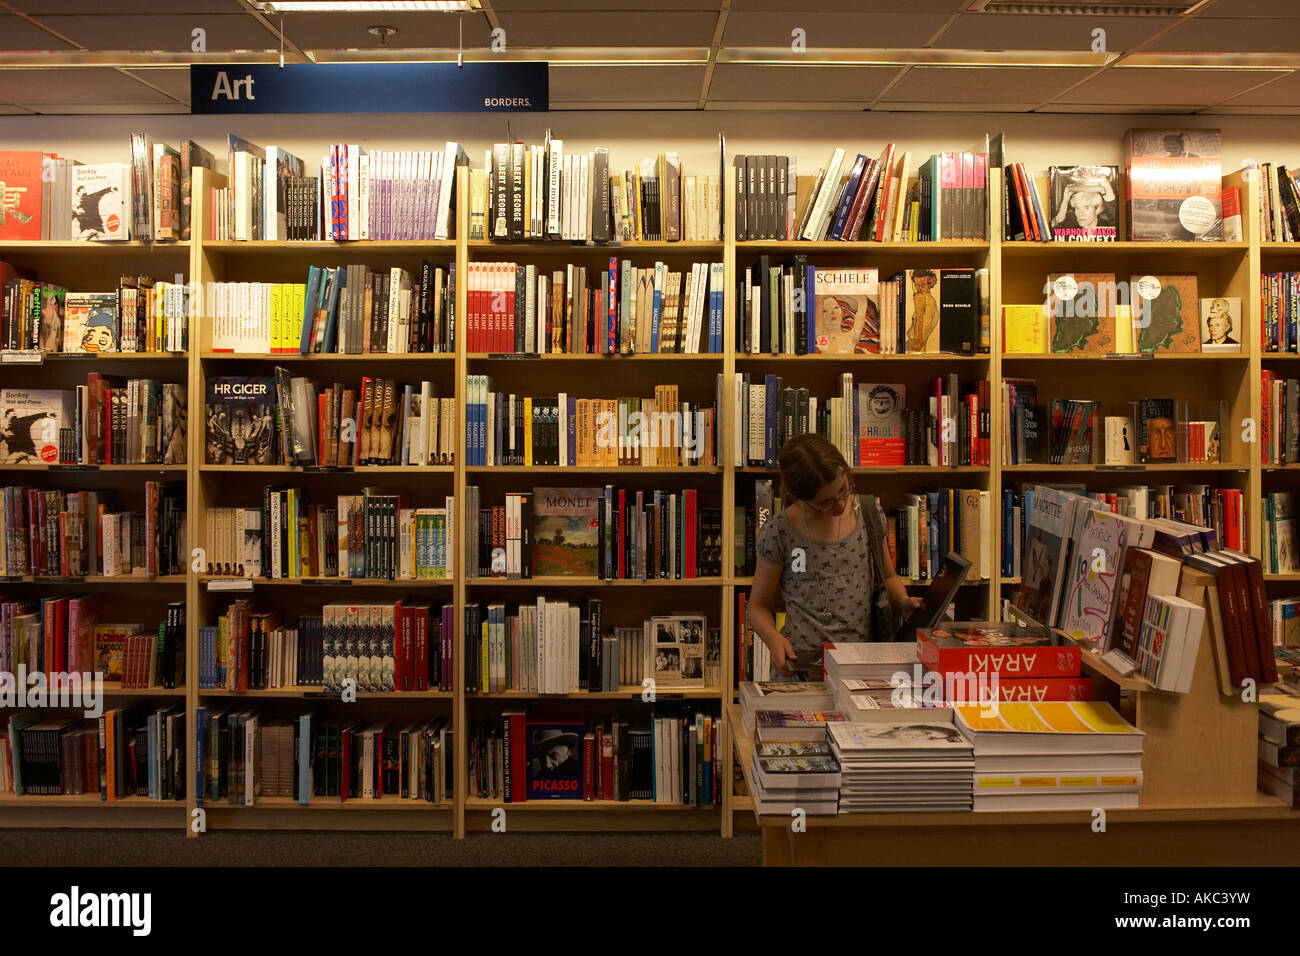 surrounded-by-books-a-young-12-year-old-